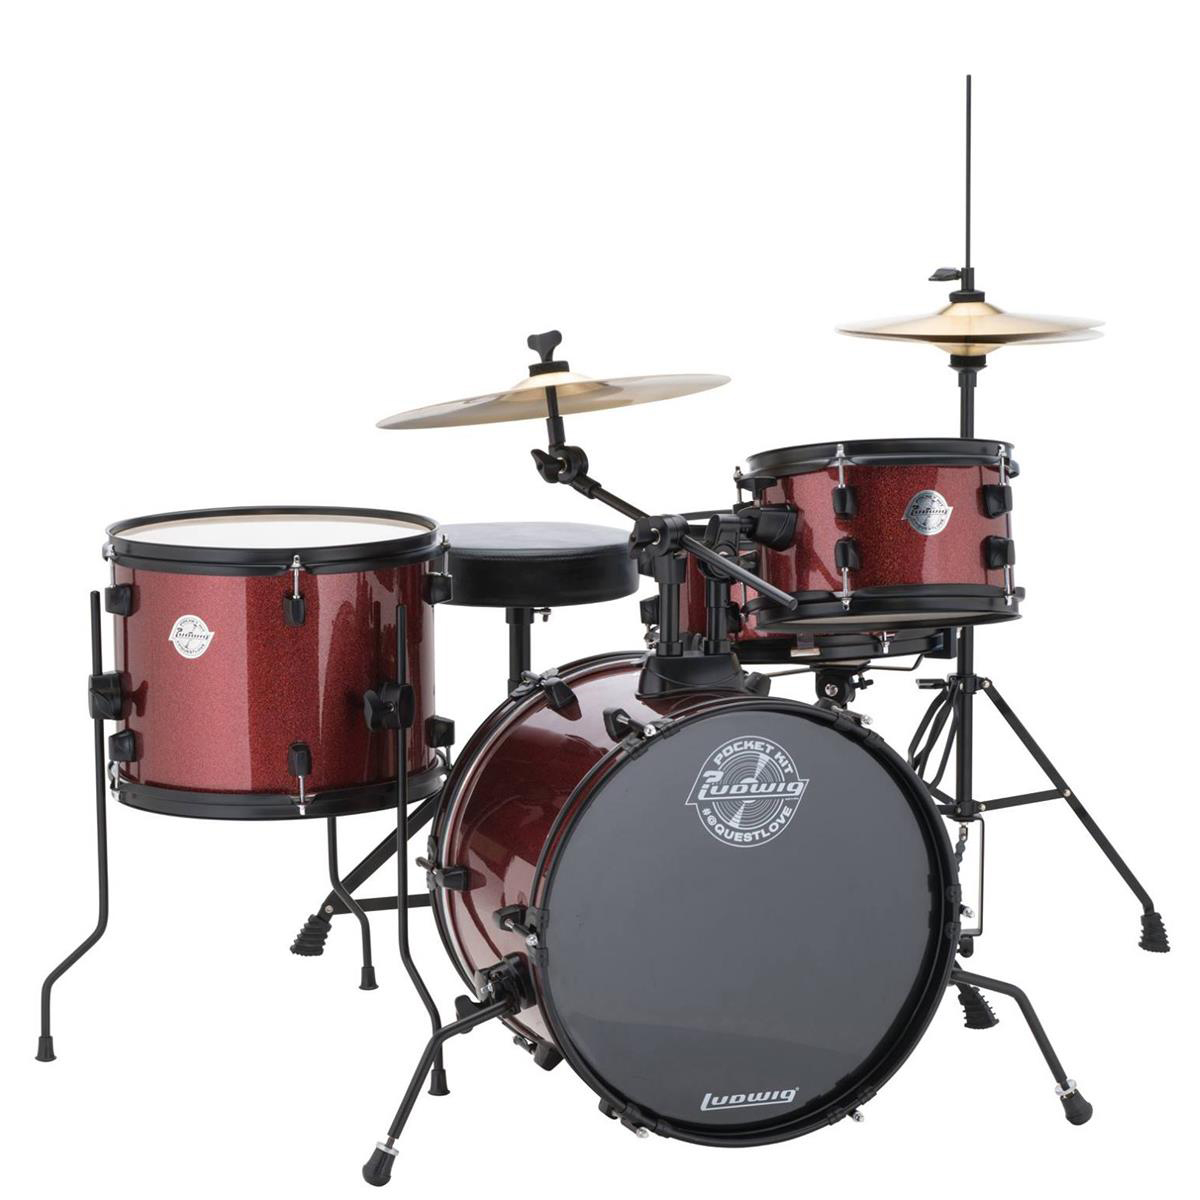 Ludwig LC178X025 Questlove Pocket Kit 4-Piece Drum Set - Red Wine Sparkle